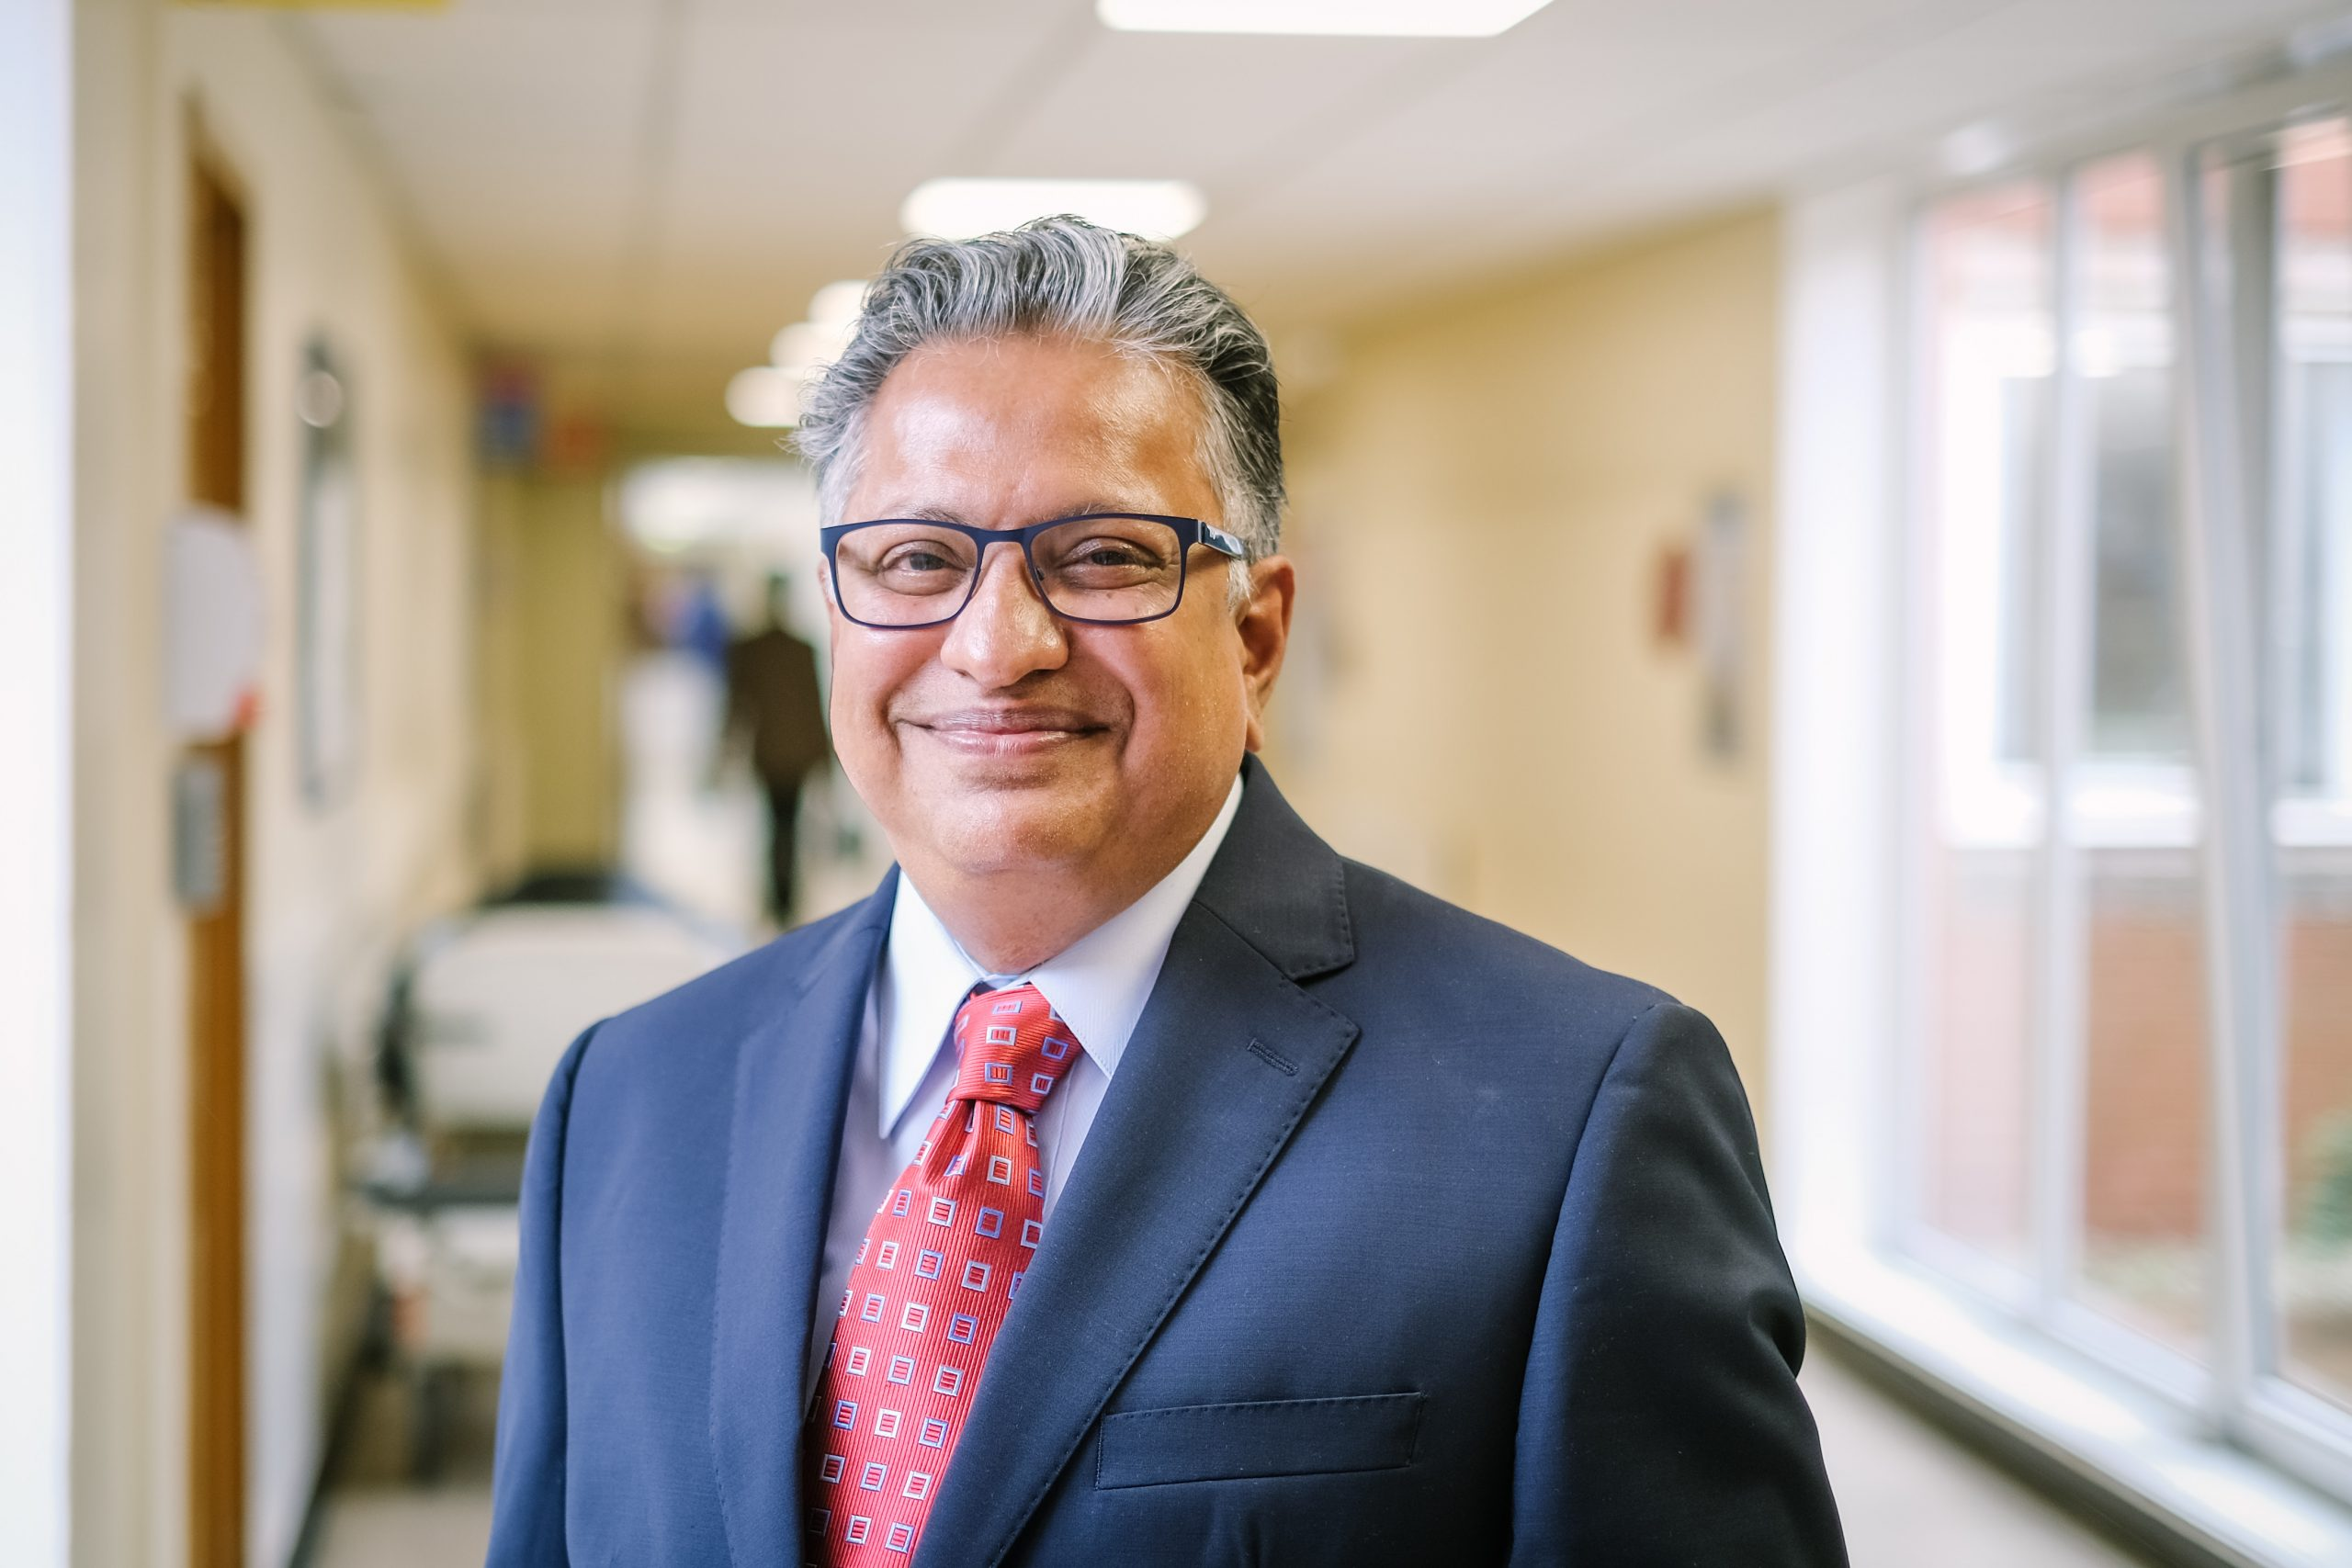 a picture of the Clinical Lead, Asish Chatterjee